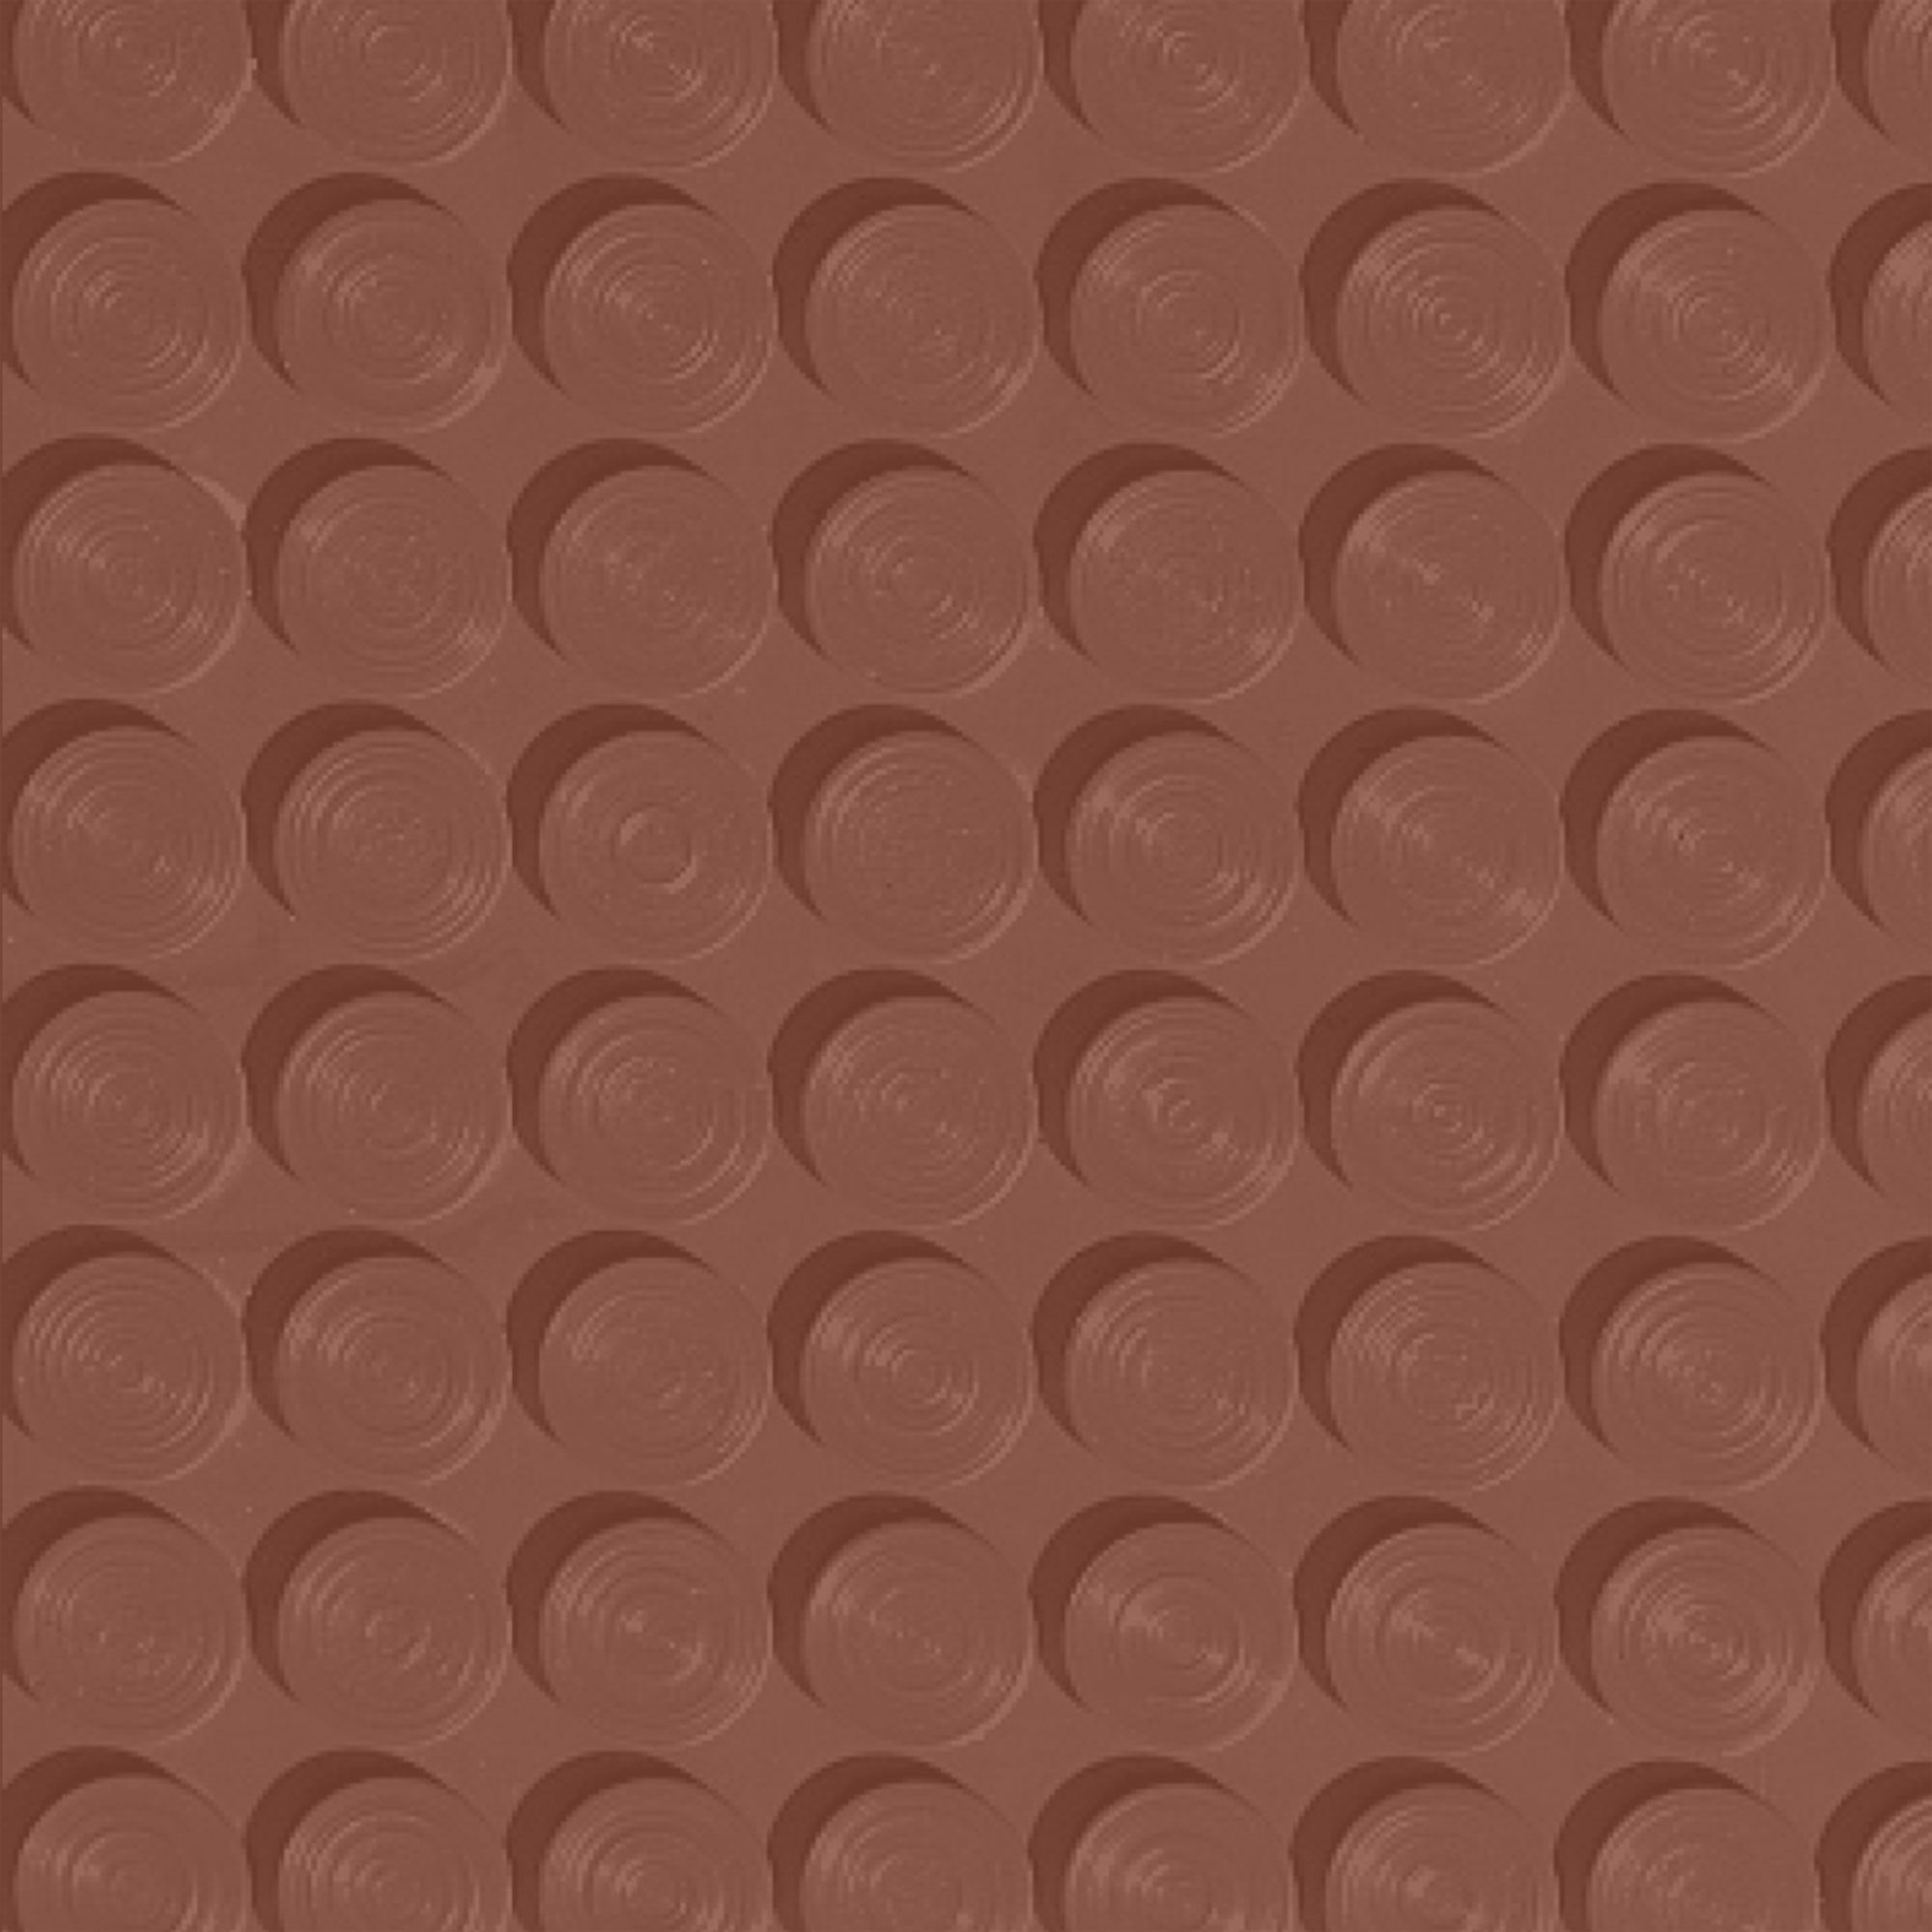 Roppe Rubber Tile 900 - Lug Back Vantage Design (LB996) Brick LB996188